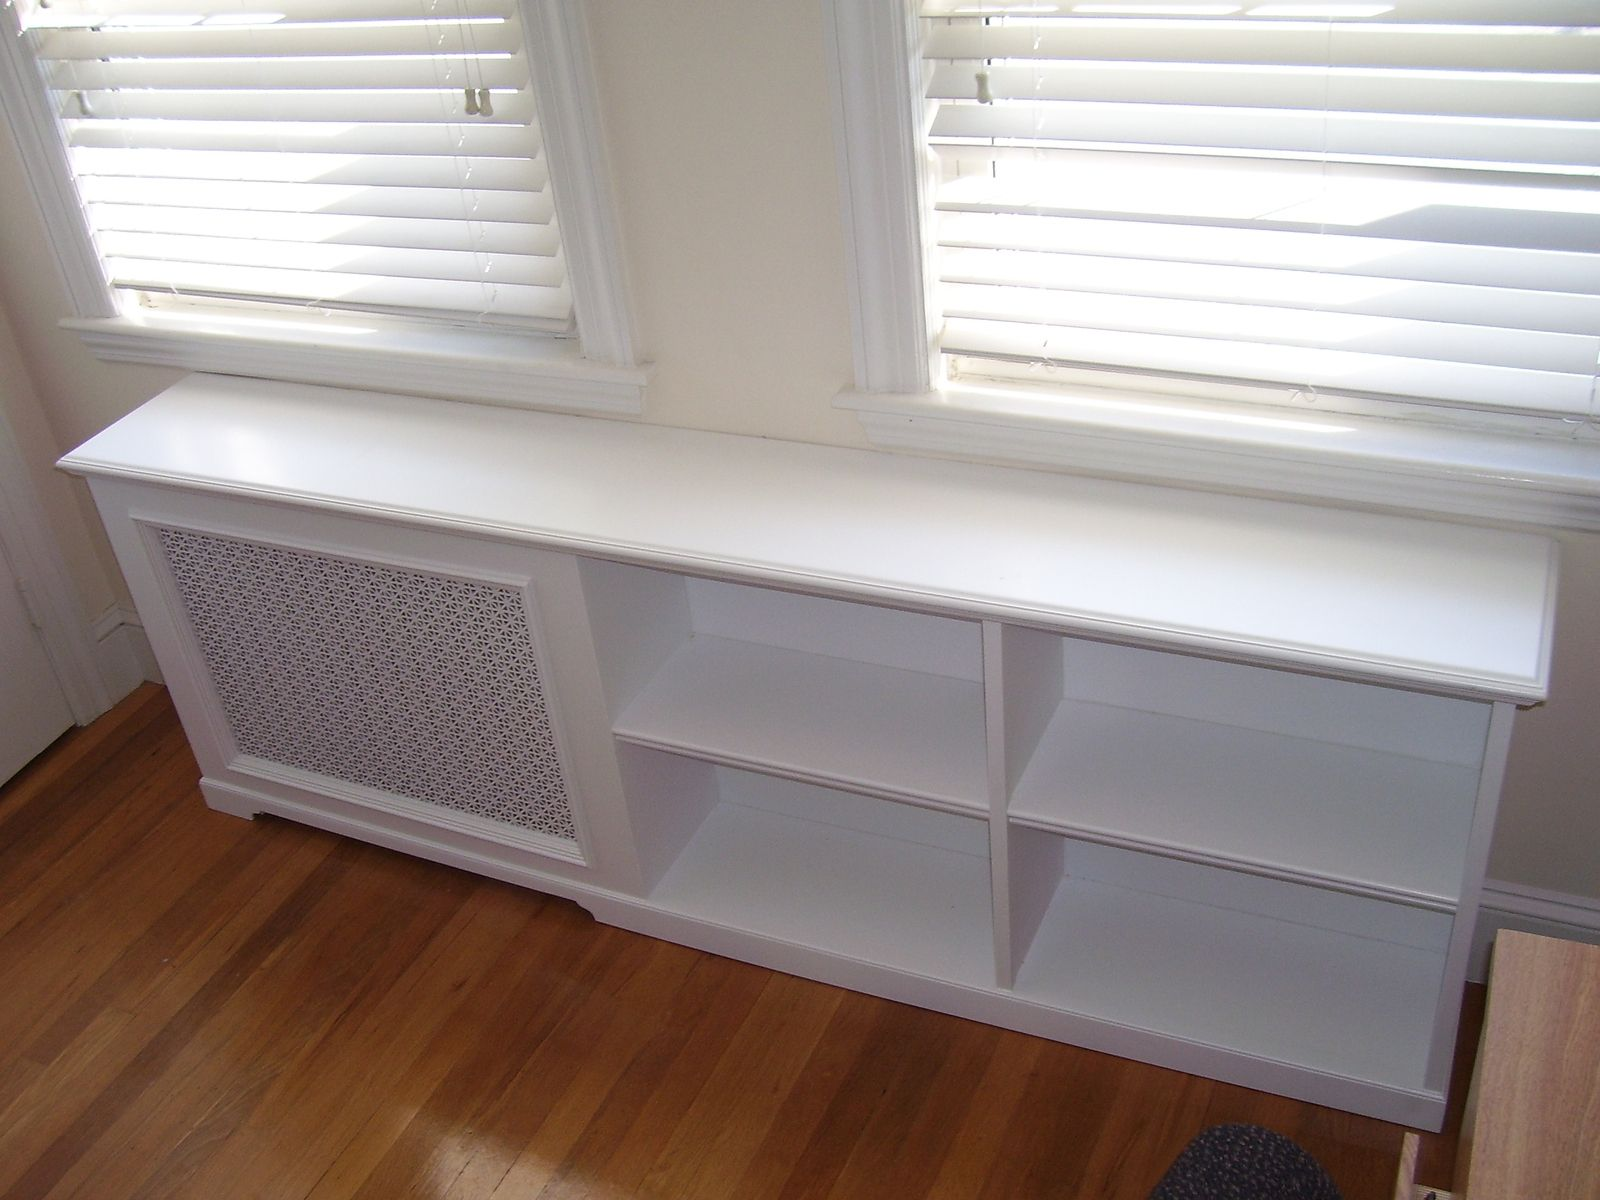 Kleine Küchenregale Custom Radiator Covers Products I Love